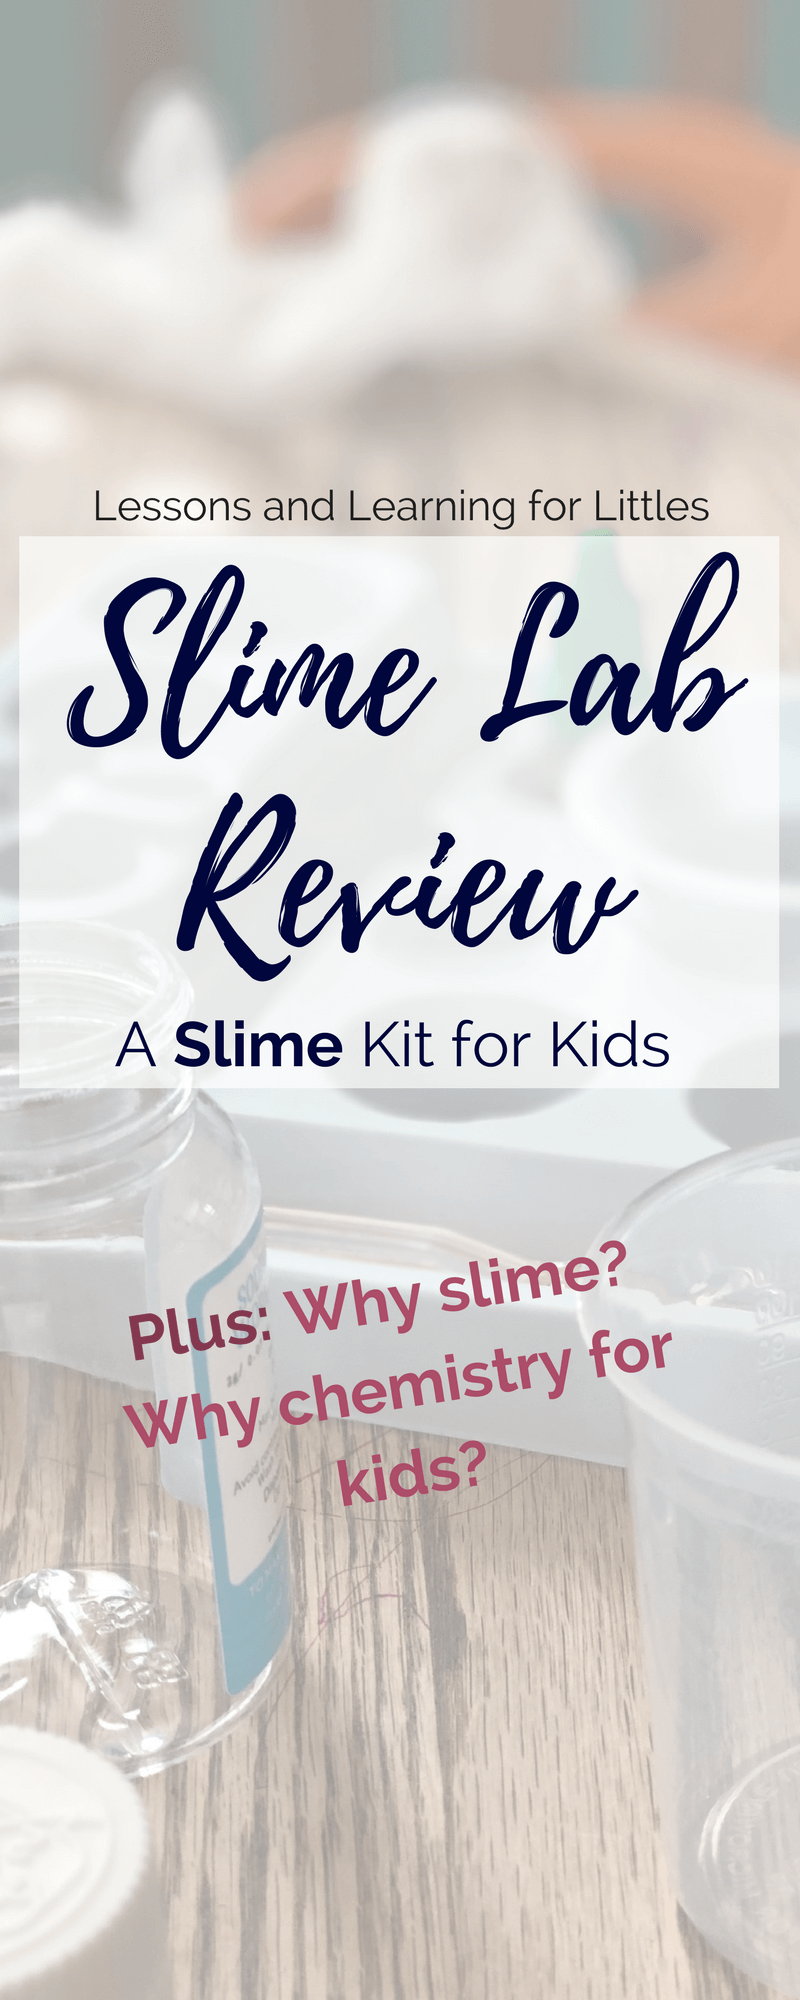 We don't always know what to get kids for #birthdays or #Christmaspresents. Kits are a great idea, but it can be hard to know which kits to get and if they'll be able to use it. Slime is something most kids enjoy making, so why not try a slime kit? Find out the benefits of this #slime kit plus reasons you should do chemistry activities with your kids. #preschoolscience #slimekit #giftideaforkids